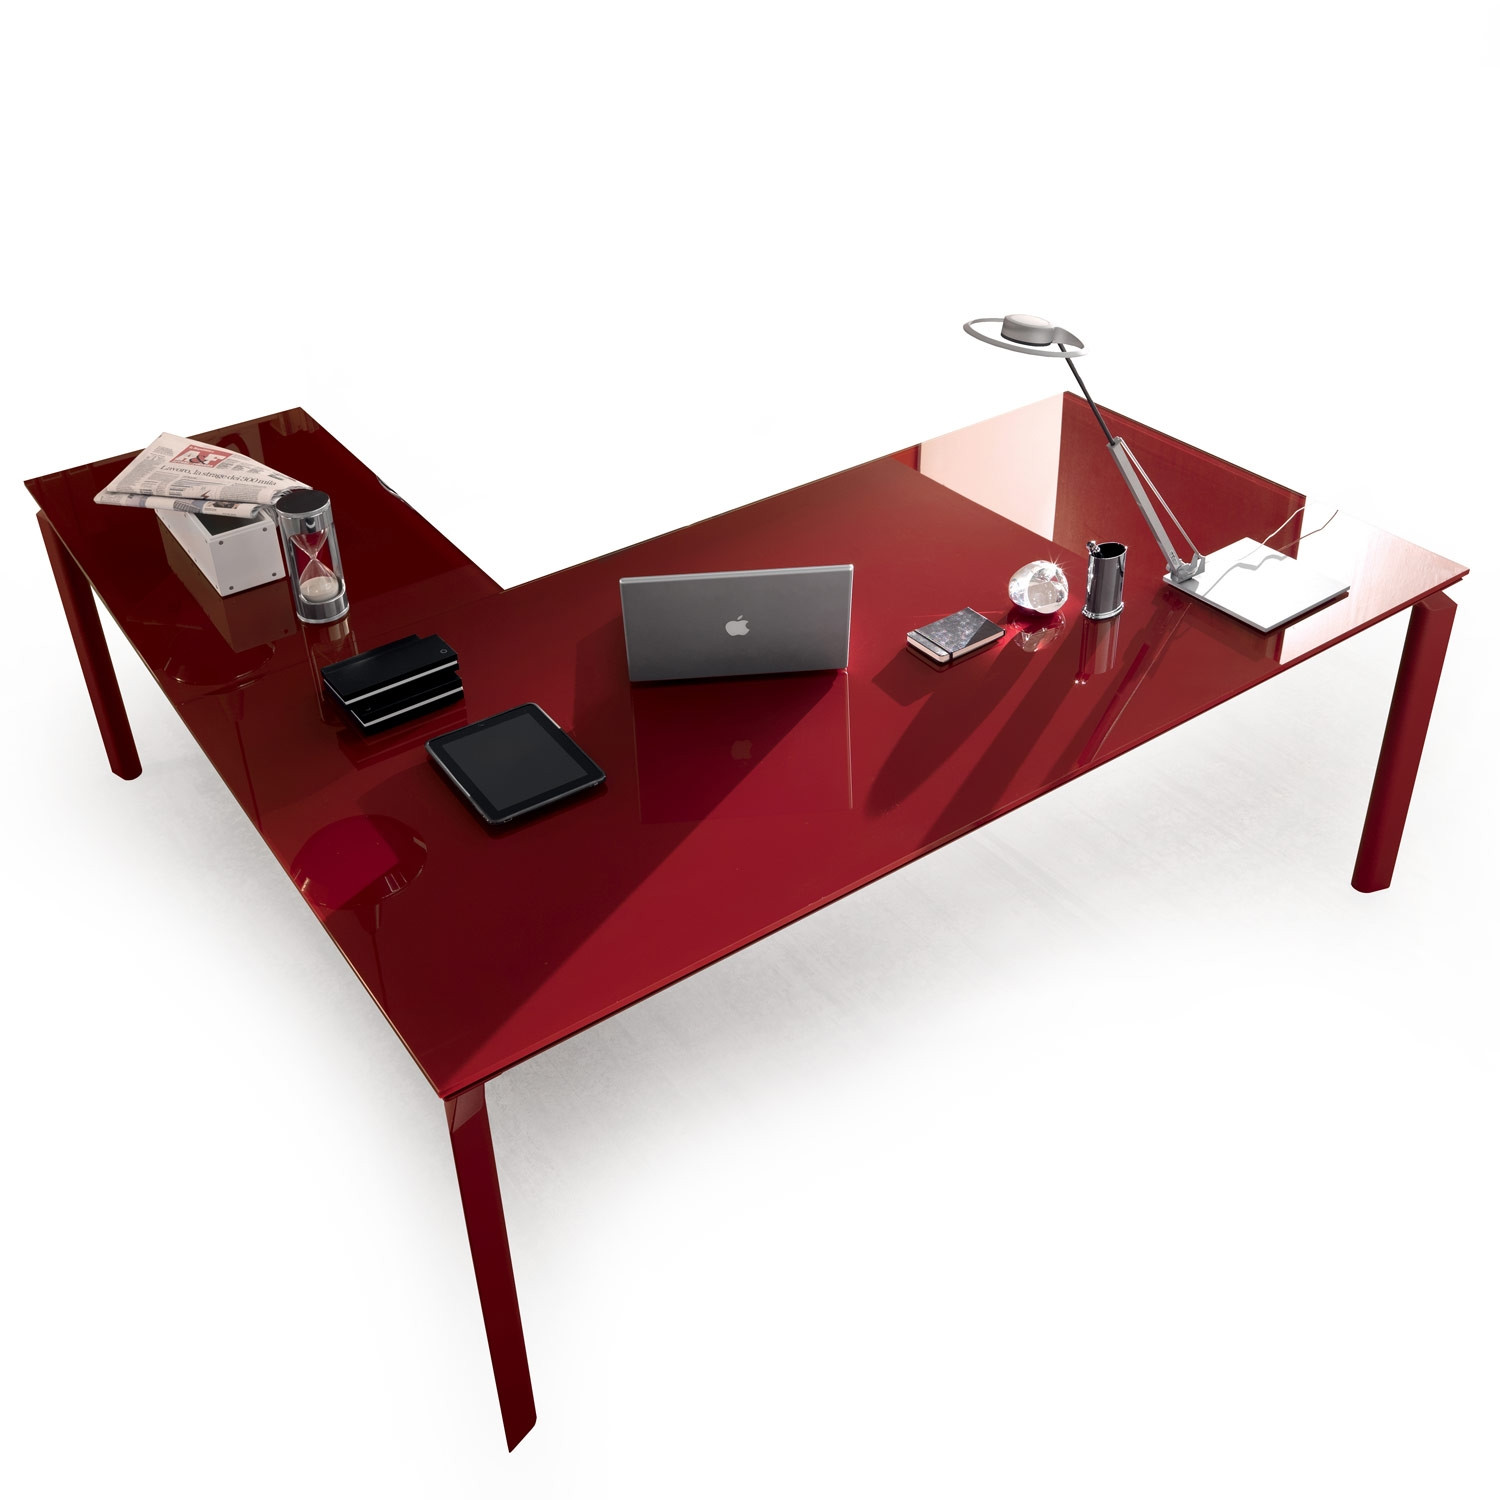 Anyware Executive Desk